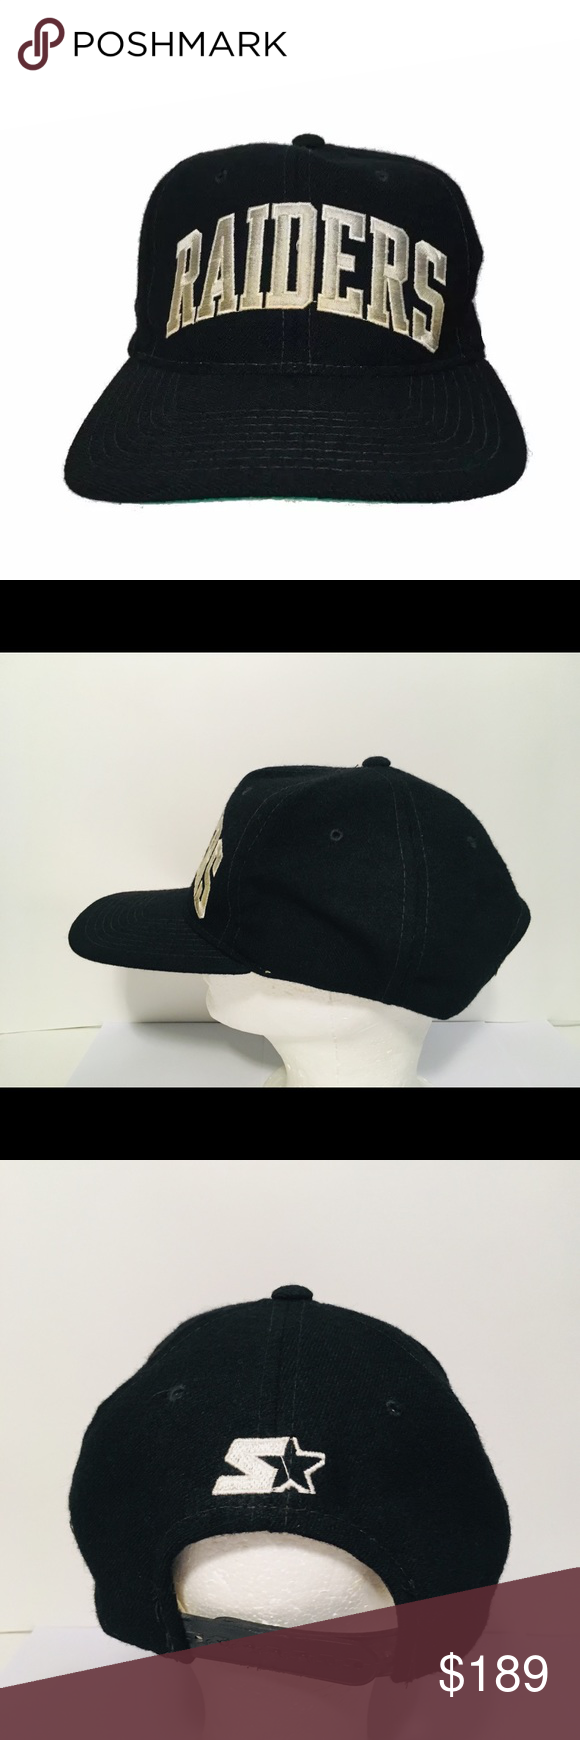 78f52e8415e29 Vintage Raiders Arch Wool Starter Hat Eazy E NWA • Rare Starter NFL snapback  hat. • Raiders arch text logo • Made of 100% wool. • Near excellent  condition.